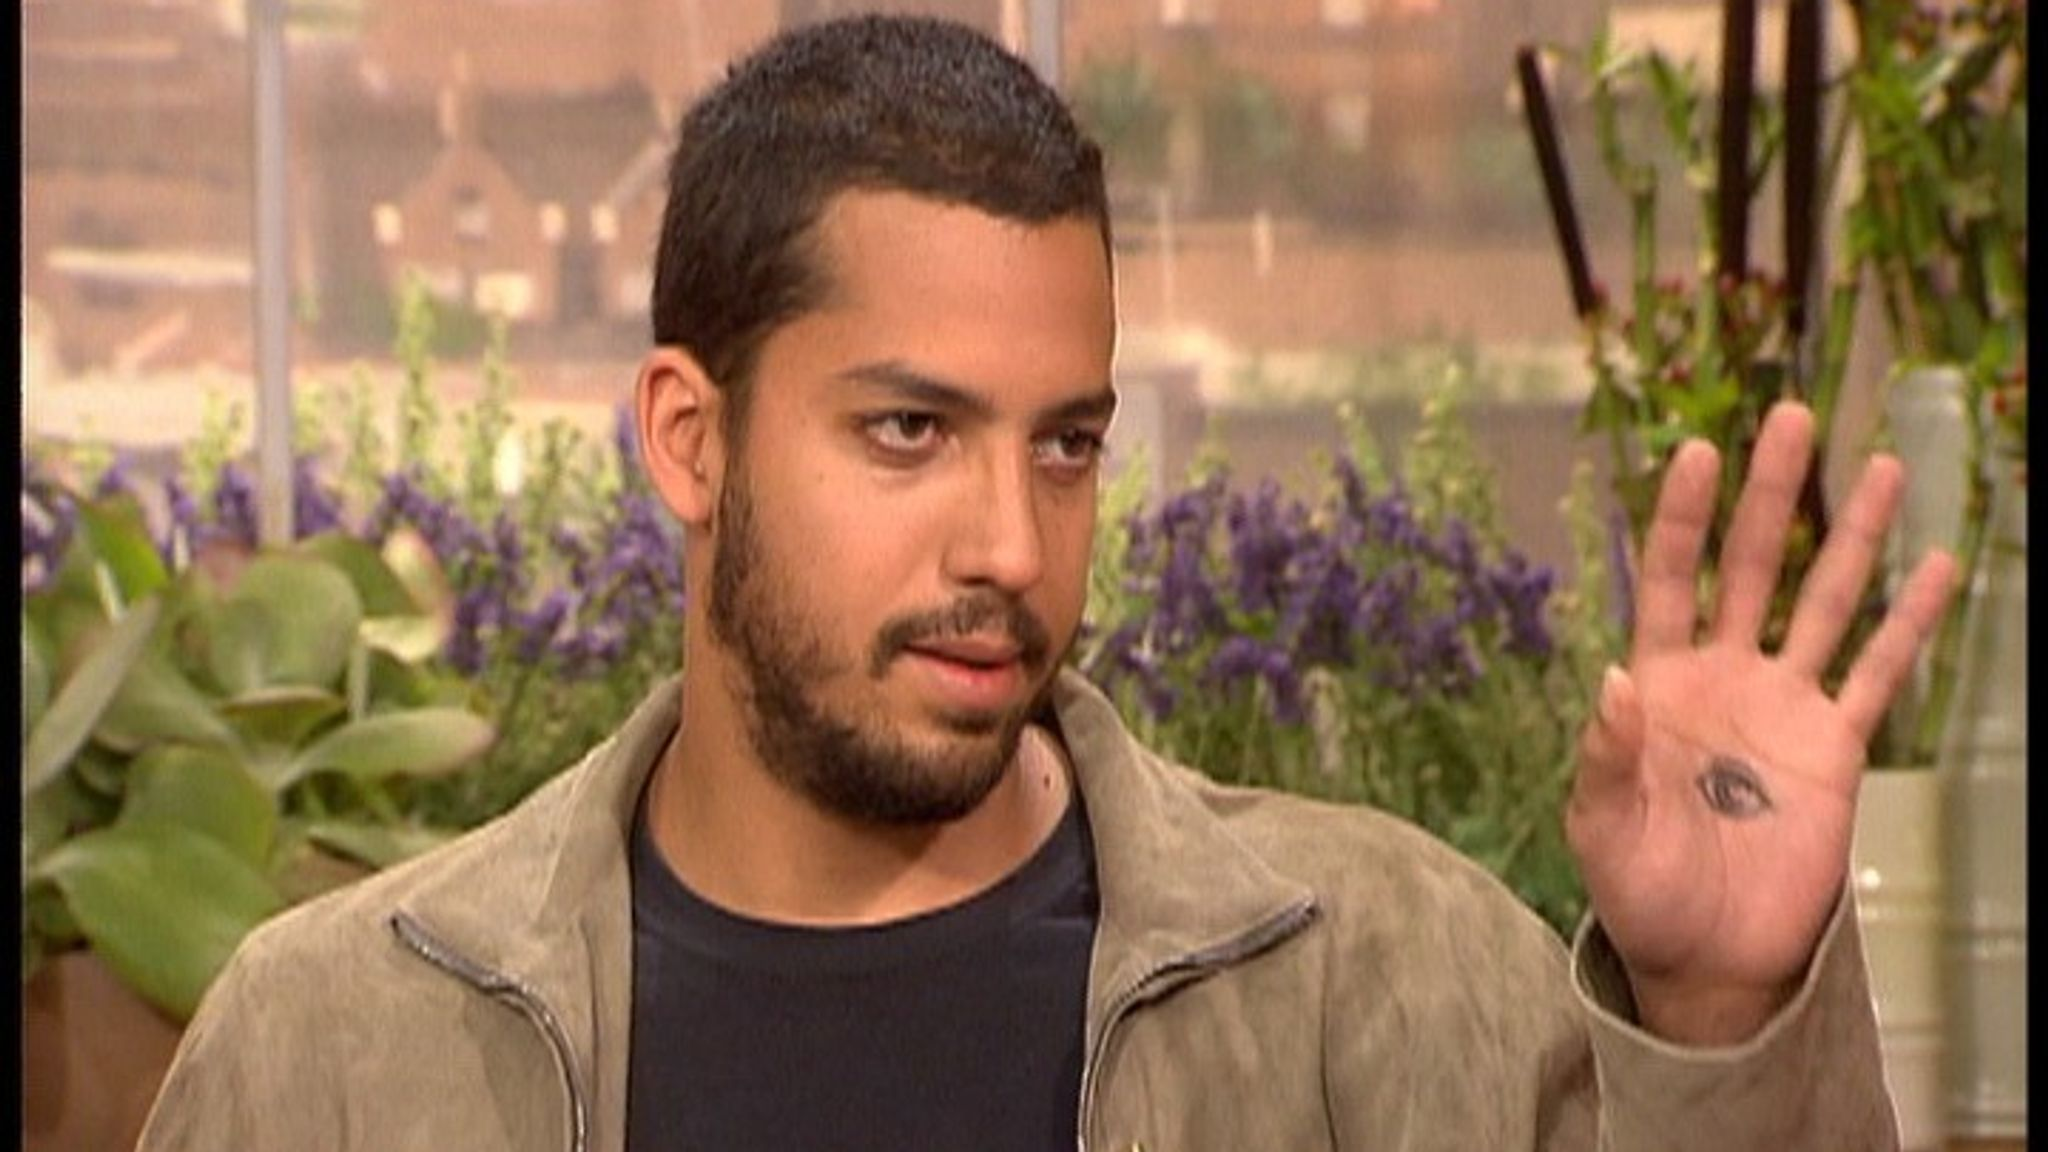 David Blaine and Eamonn Holmes on GMTV. Pic: Shutterstock/ITV